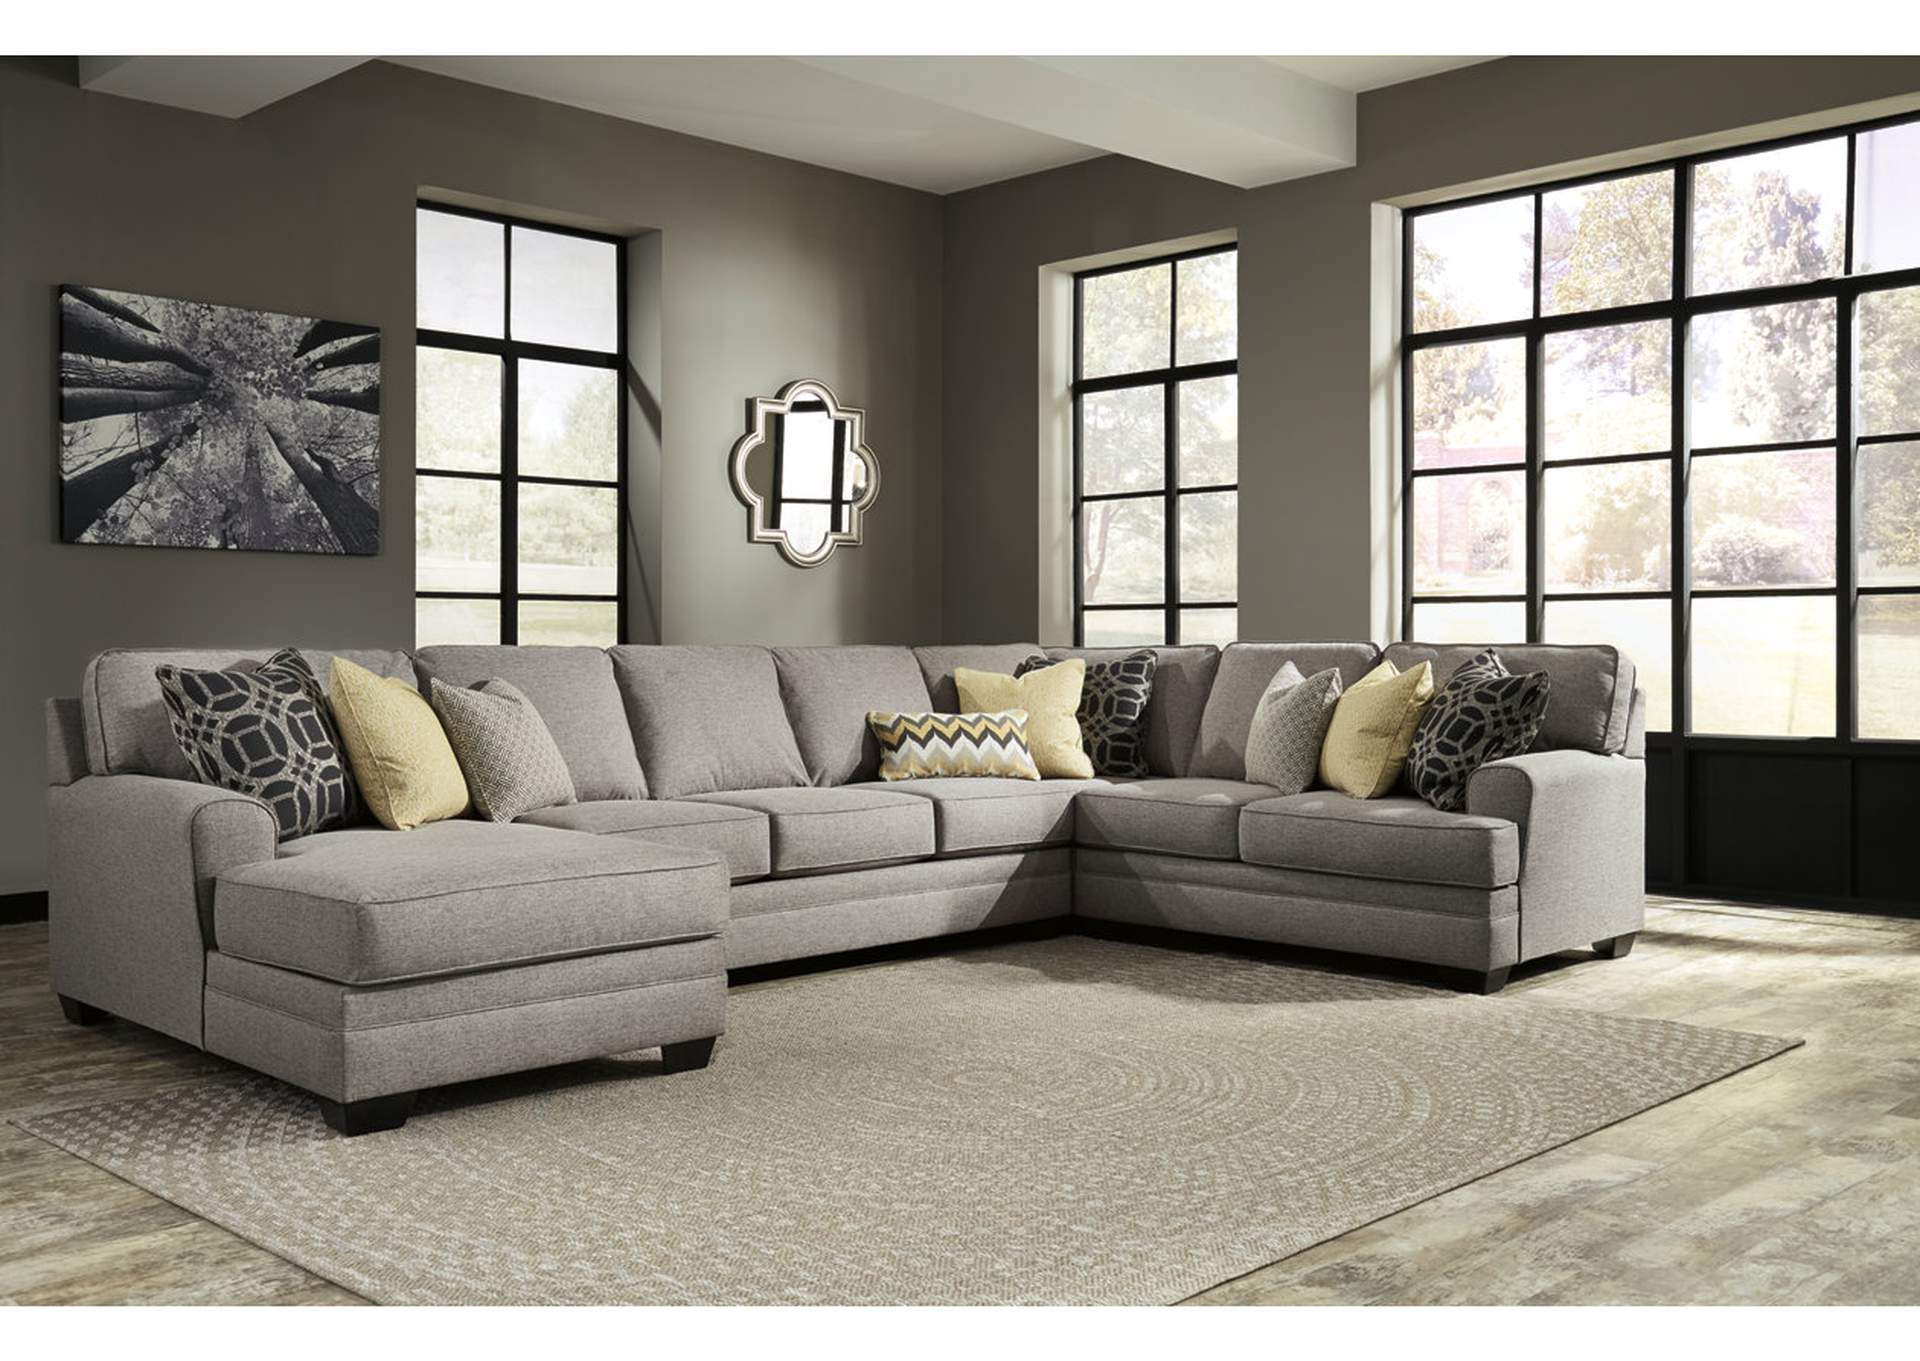 Cresson Pewter Left Facing Corner Chaise Sofa Sectional,Benchcraft